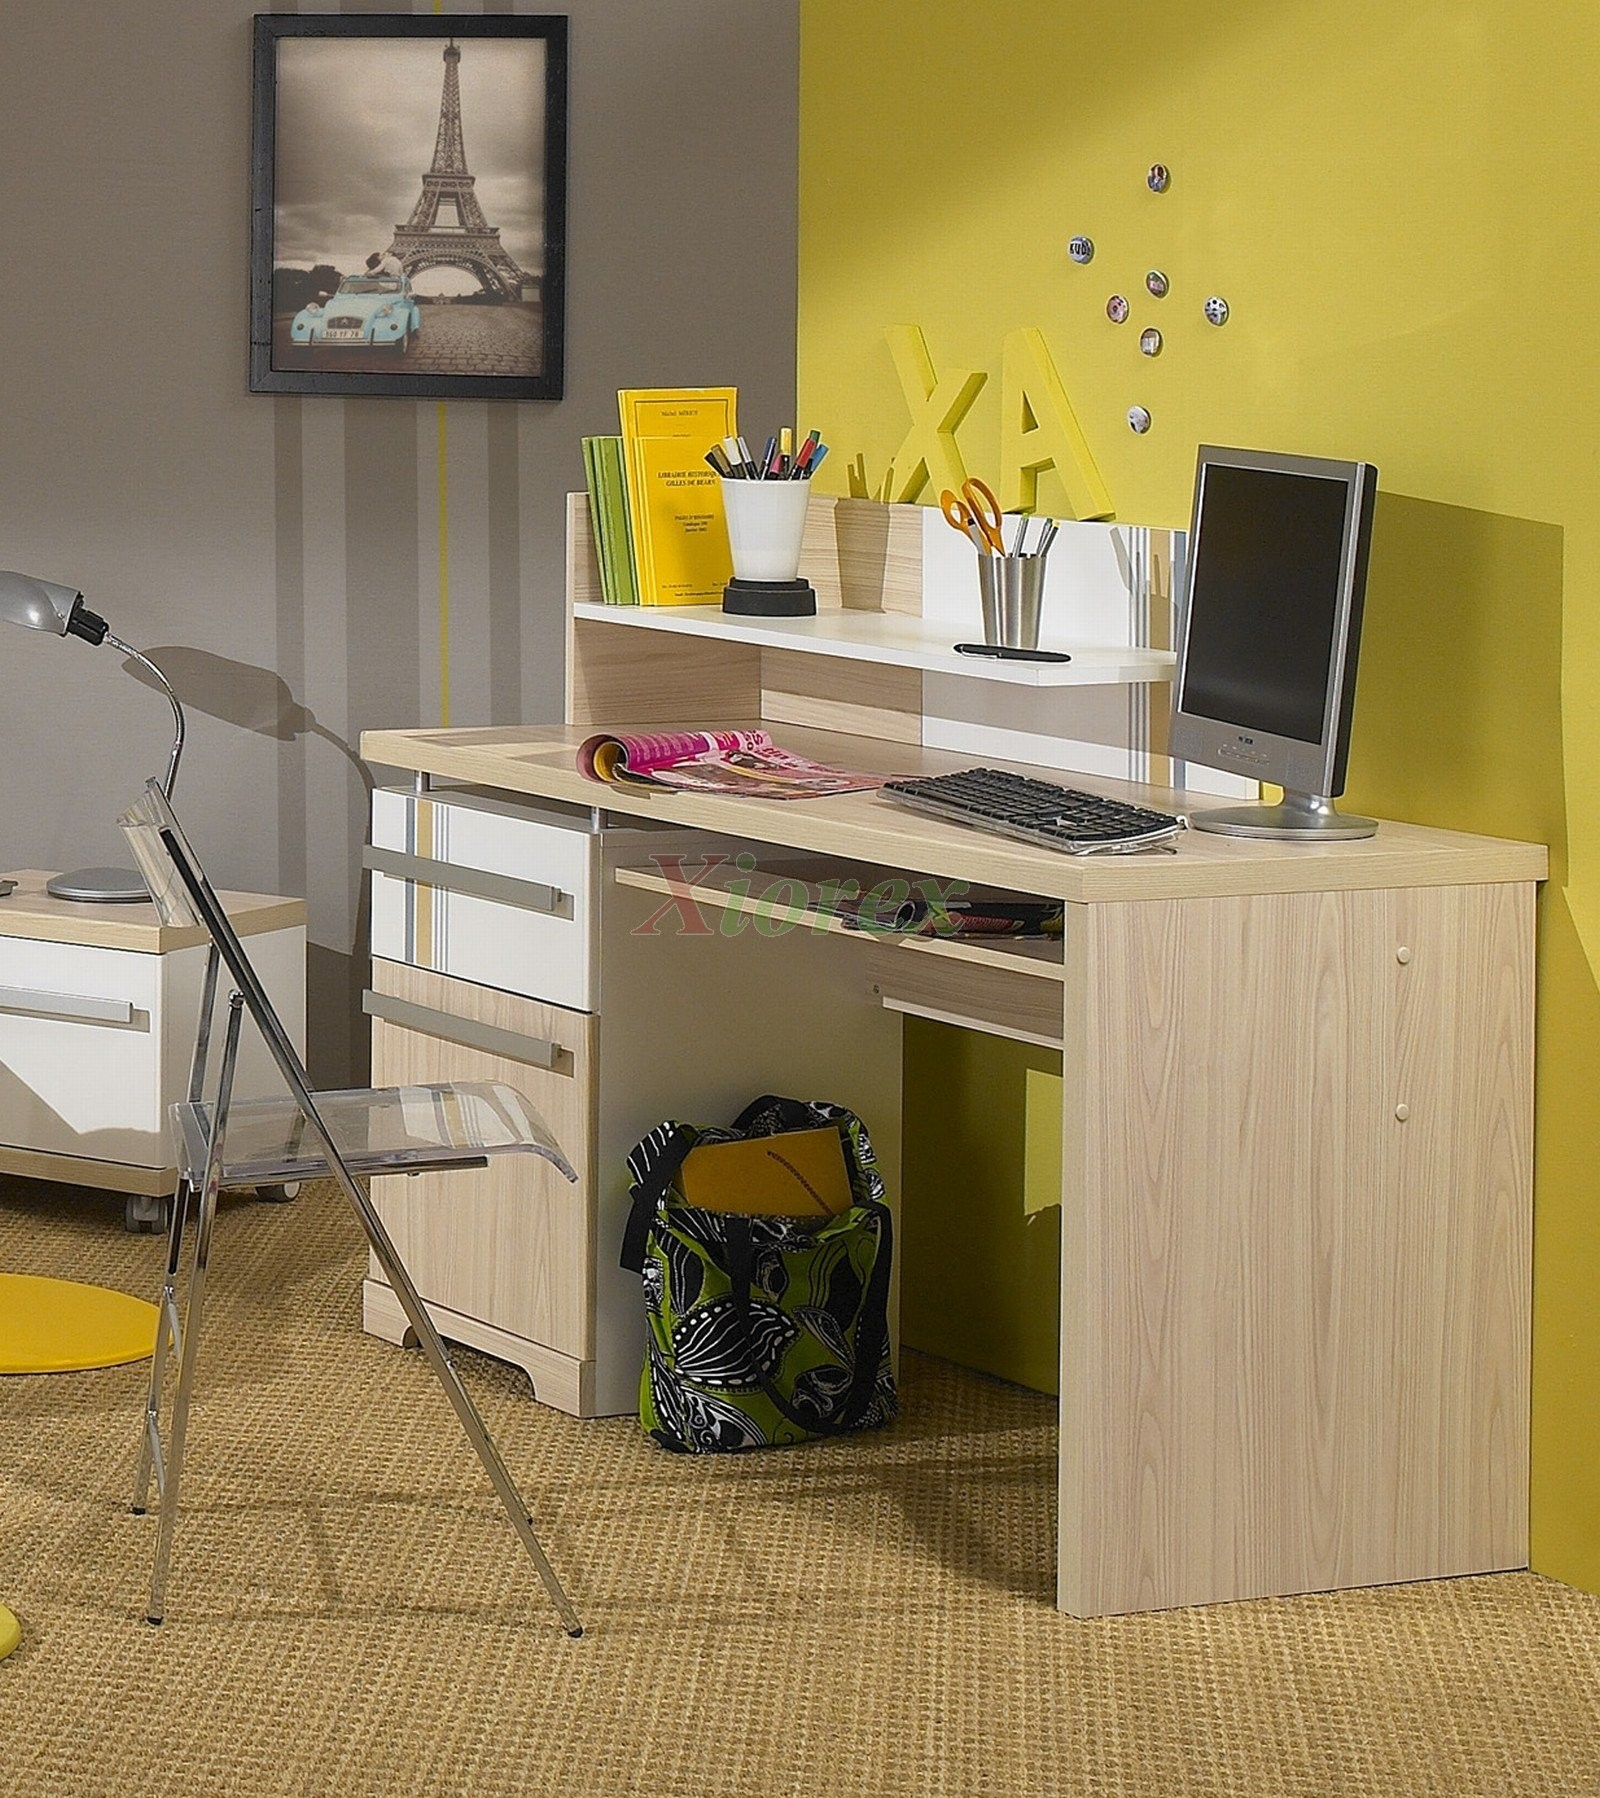 Kids Bedroom Desks | Xiorex Shop Kids Desks and Desk Sets Furniture